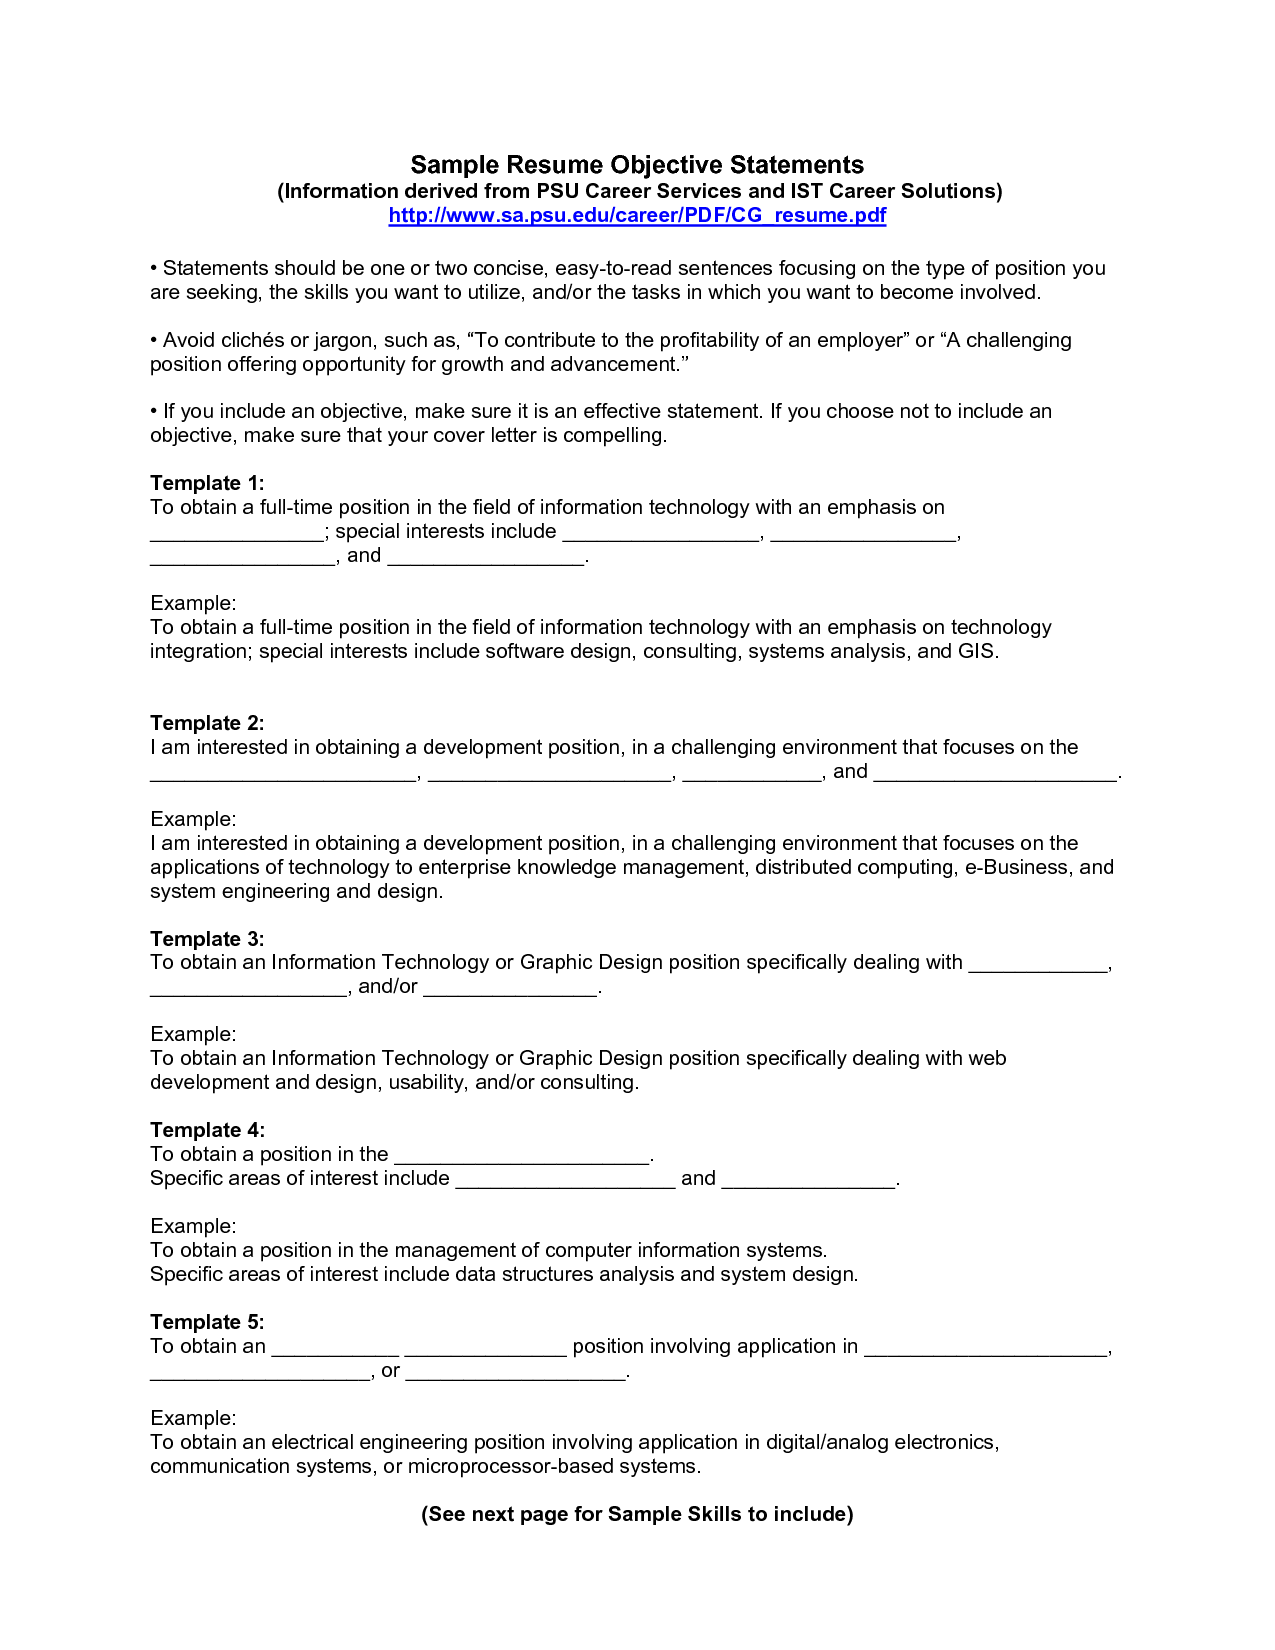 Areas Of Expertise Resume Examples Delectable Resume Objective Statement For Teacher  Httpwww.resumecareer .